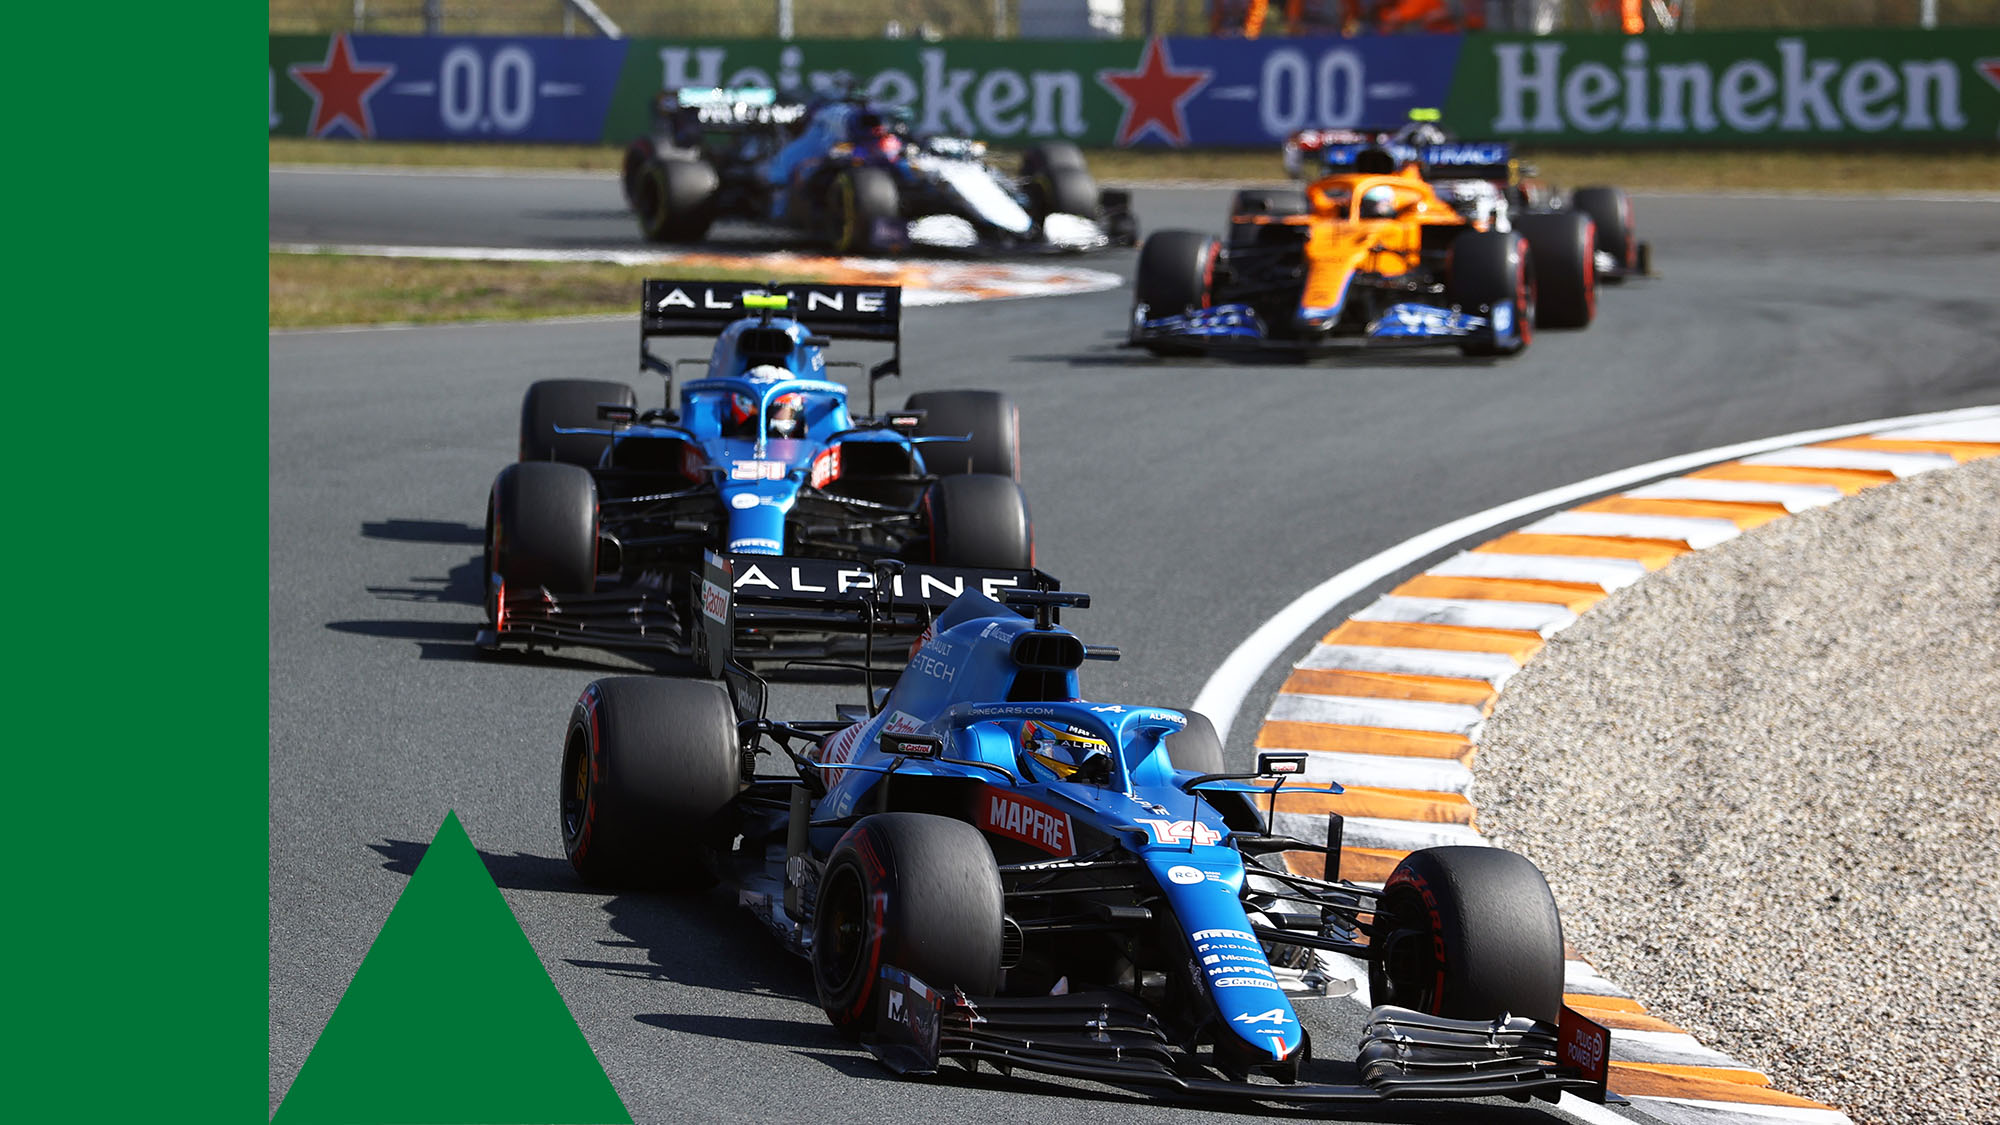 ZANDVOORT, NETHERLANDS - SEPTEMBER 05: Fernando Alonso of Spain driving the (14) Alpine A521 Renault leads Esteban Ocon of France driving the (31) Alpine A521 Renault during the F1 Grand Prix of The Netherlands at Circuit Zandvoort on September 05, 2021 in Zandvoort, Netherlands. (Photo by Bryn Lennon/Getty Images)